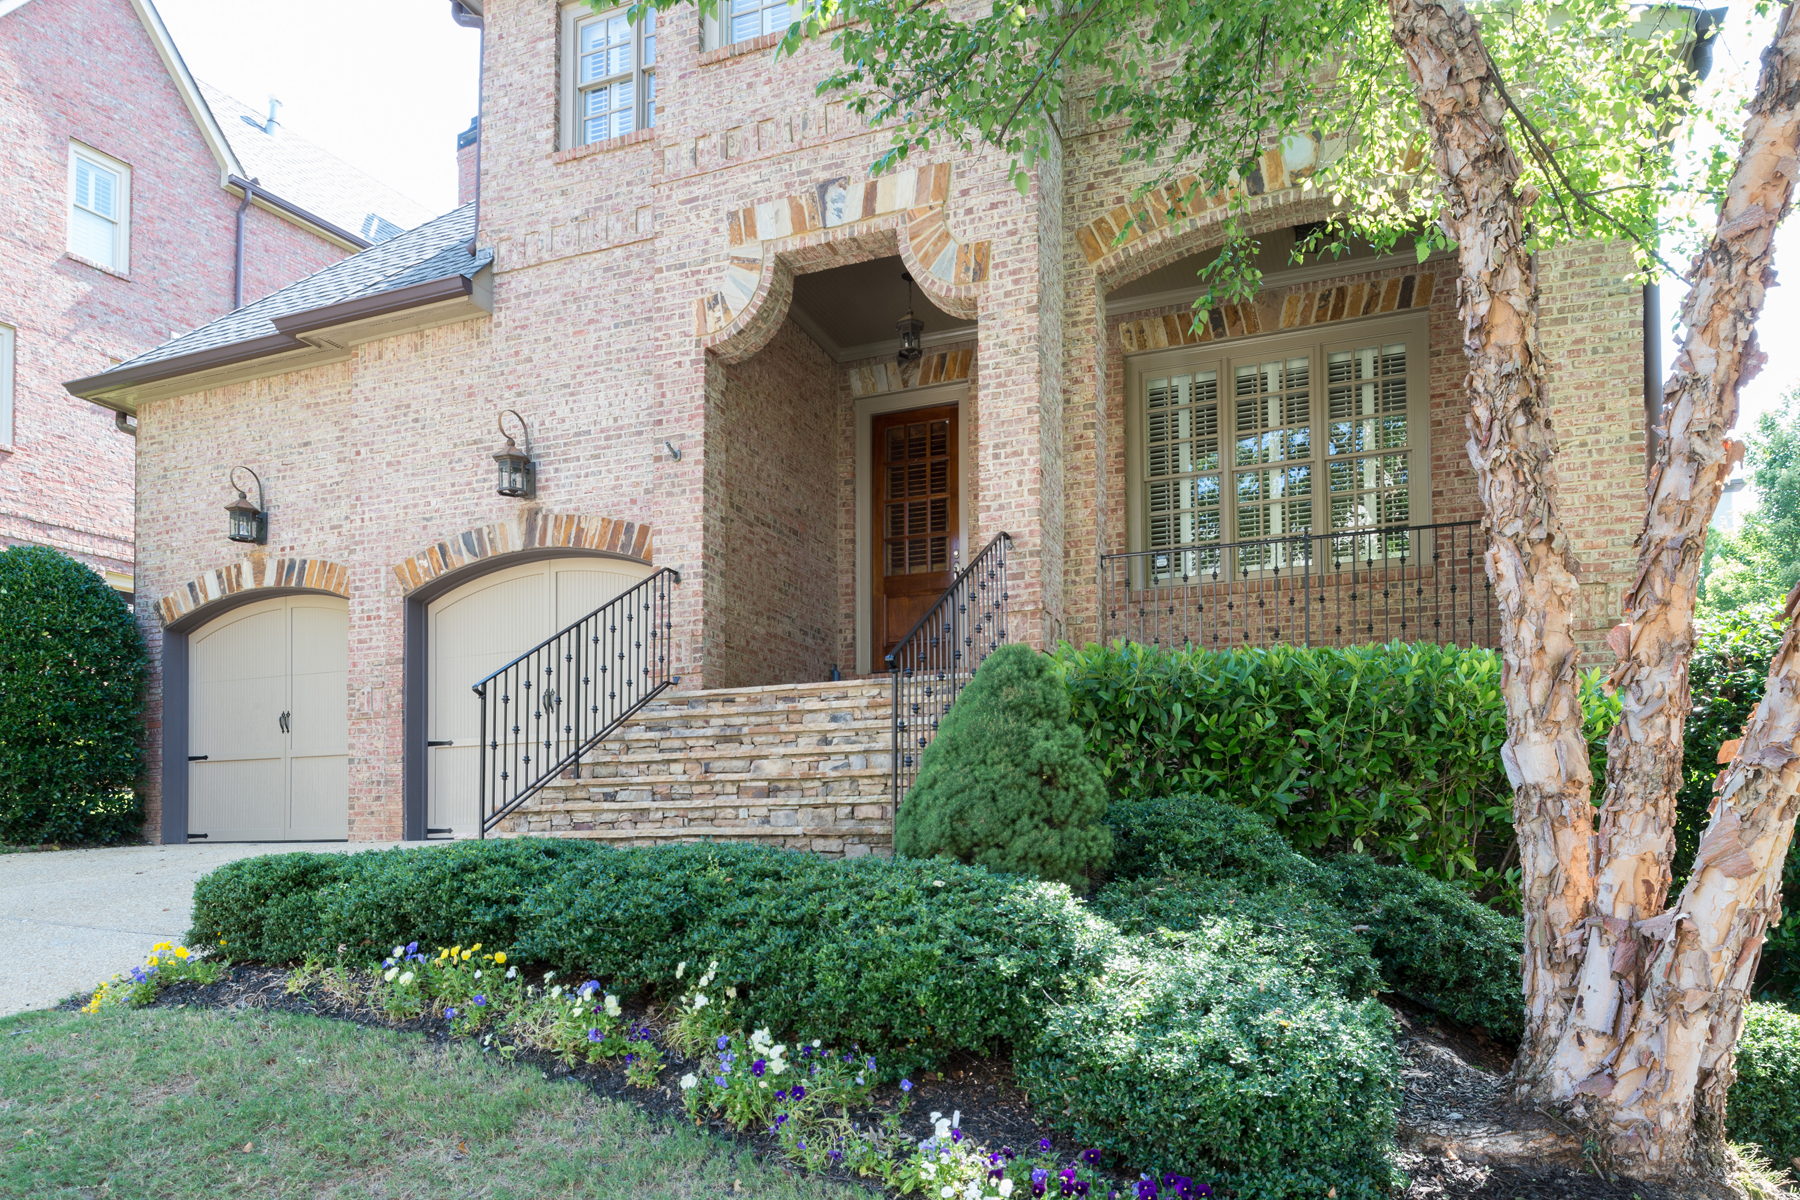 Single Family Home for Sale at Updated Brick And Stone Executive Home In Charming Brookhaven Neighborhood 1781 Buckhead Valley Lane NE Atlanta, Georgia 30324 United States